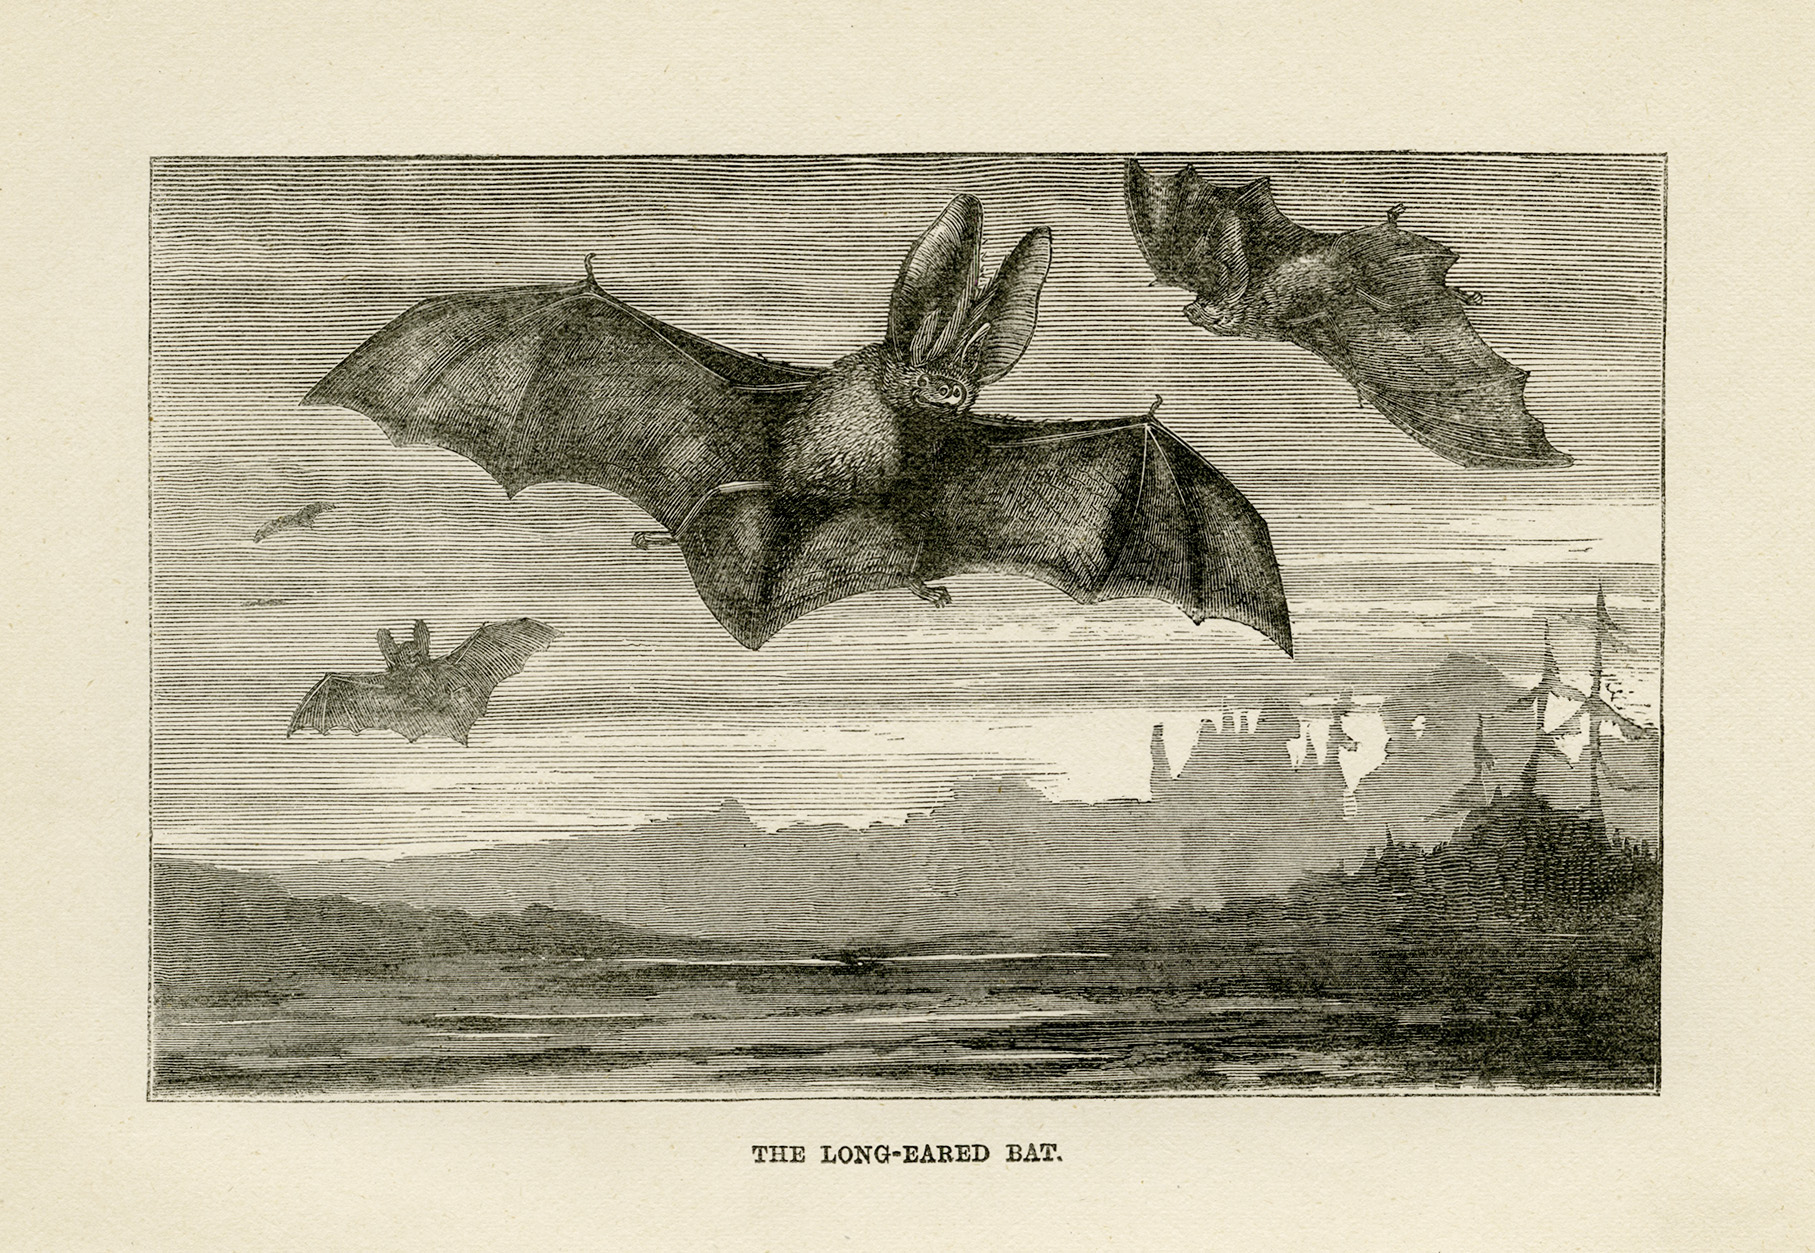 long eared bat illustration